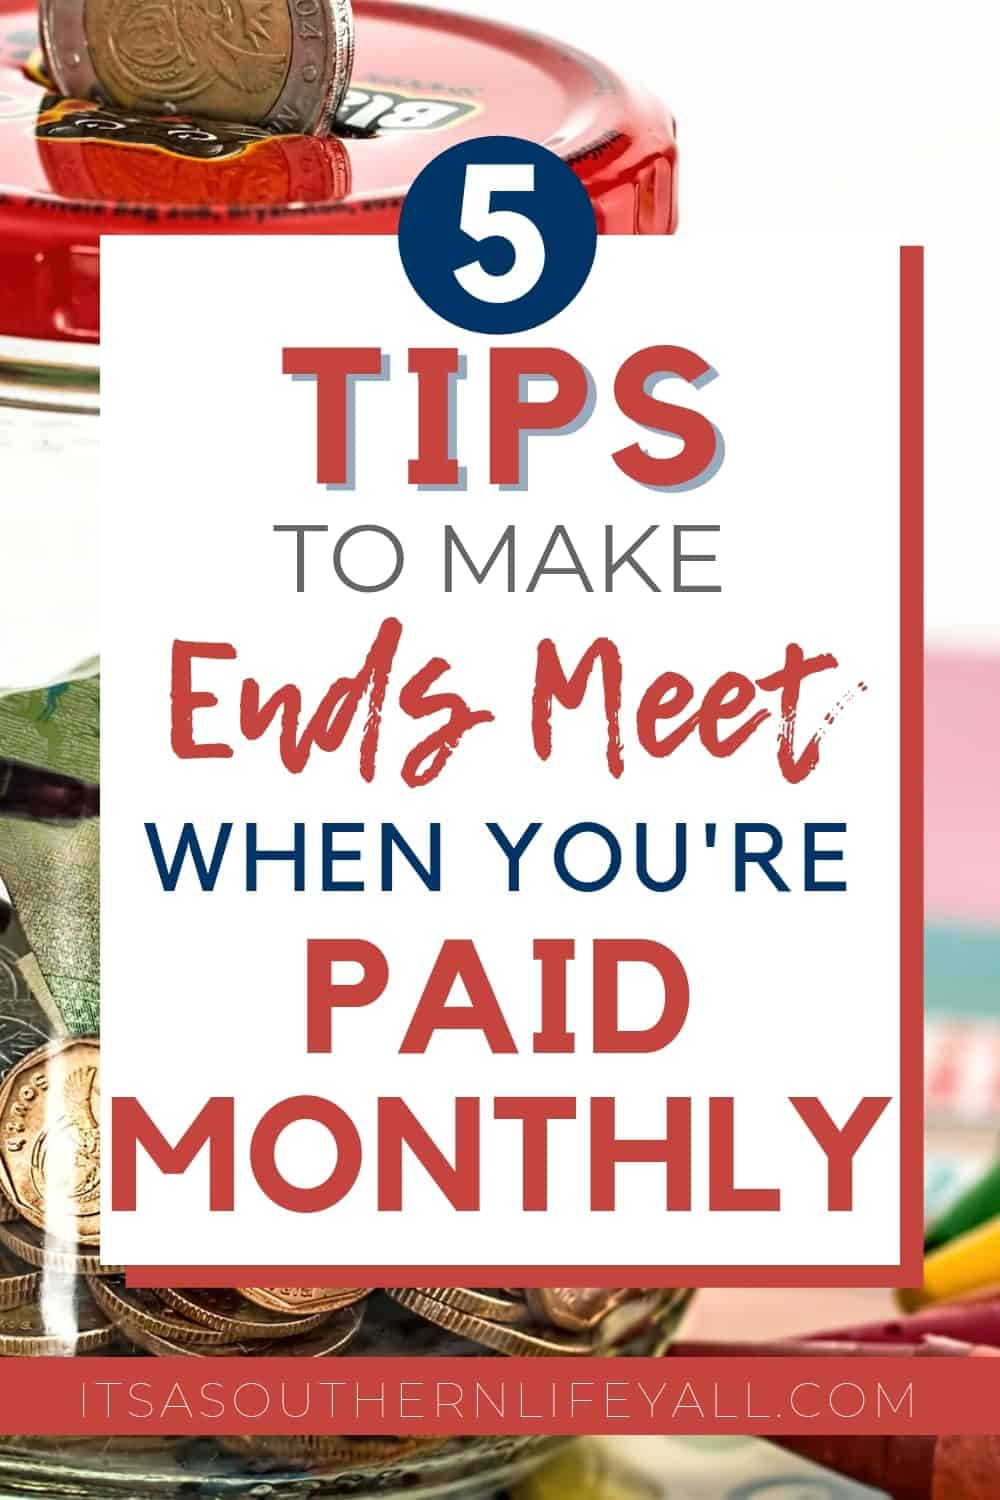 Jar with change in it with 5 tips to make ends meet when you're paid monthly text overlay.